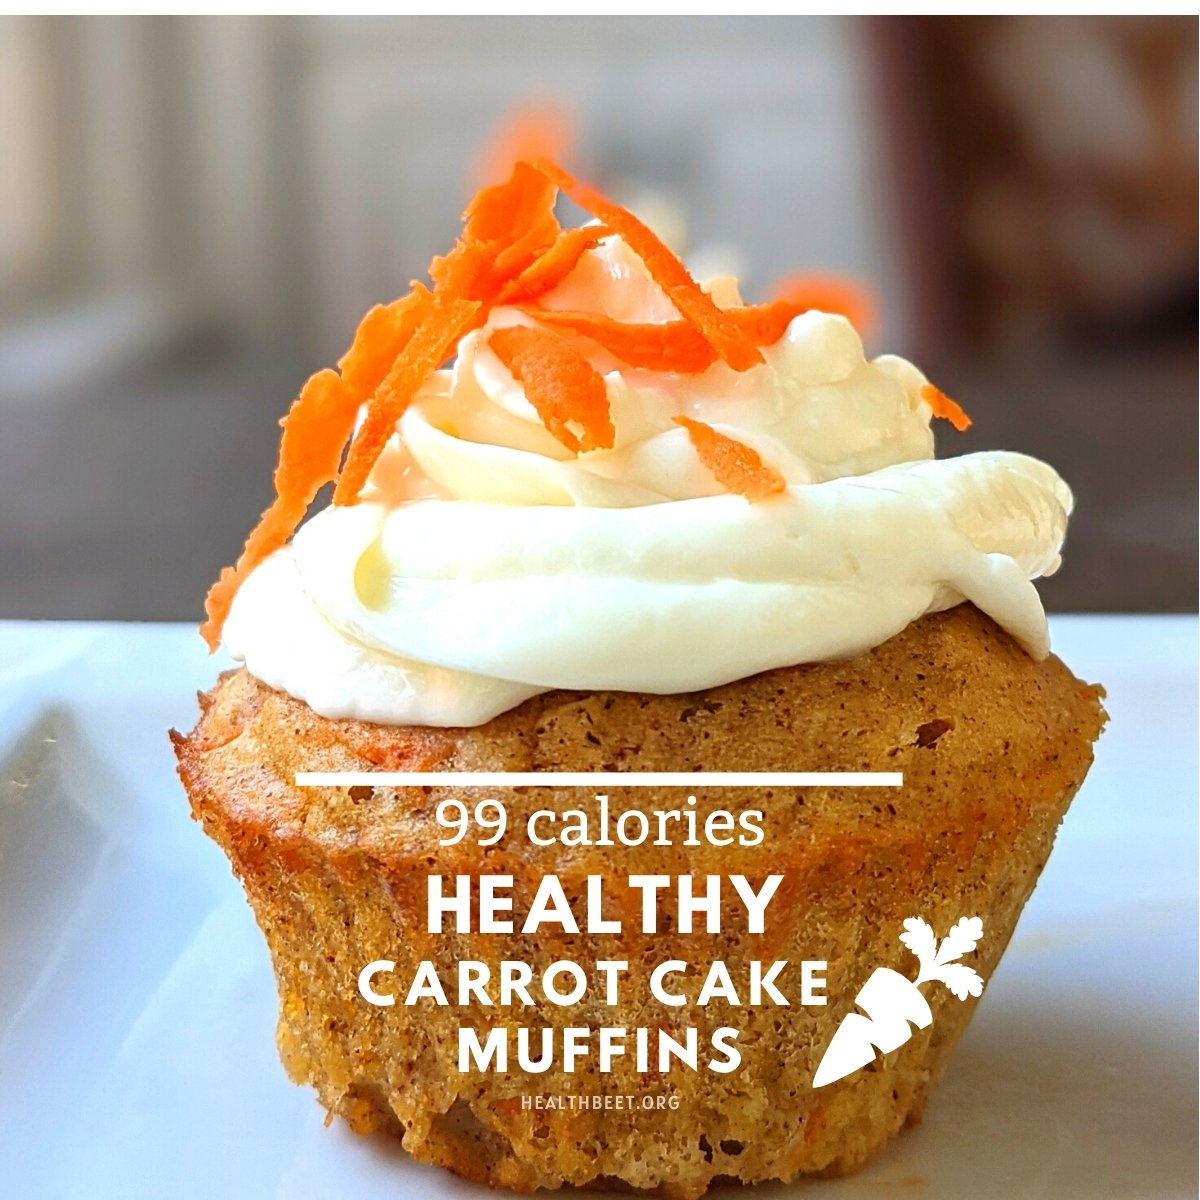 Healthy 99 calorie carrot cake muffins